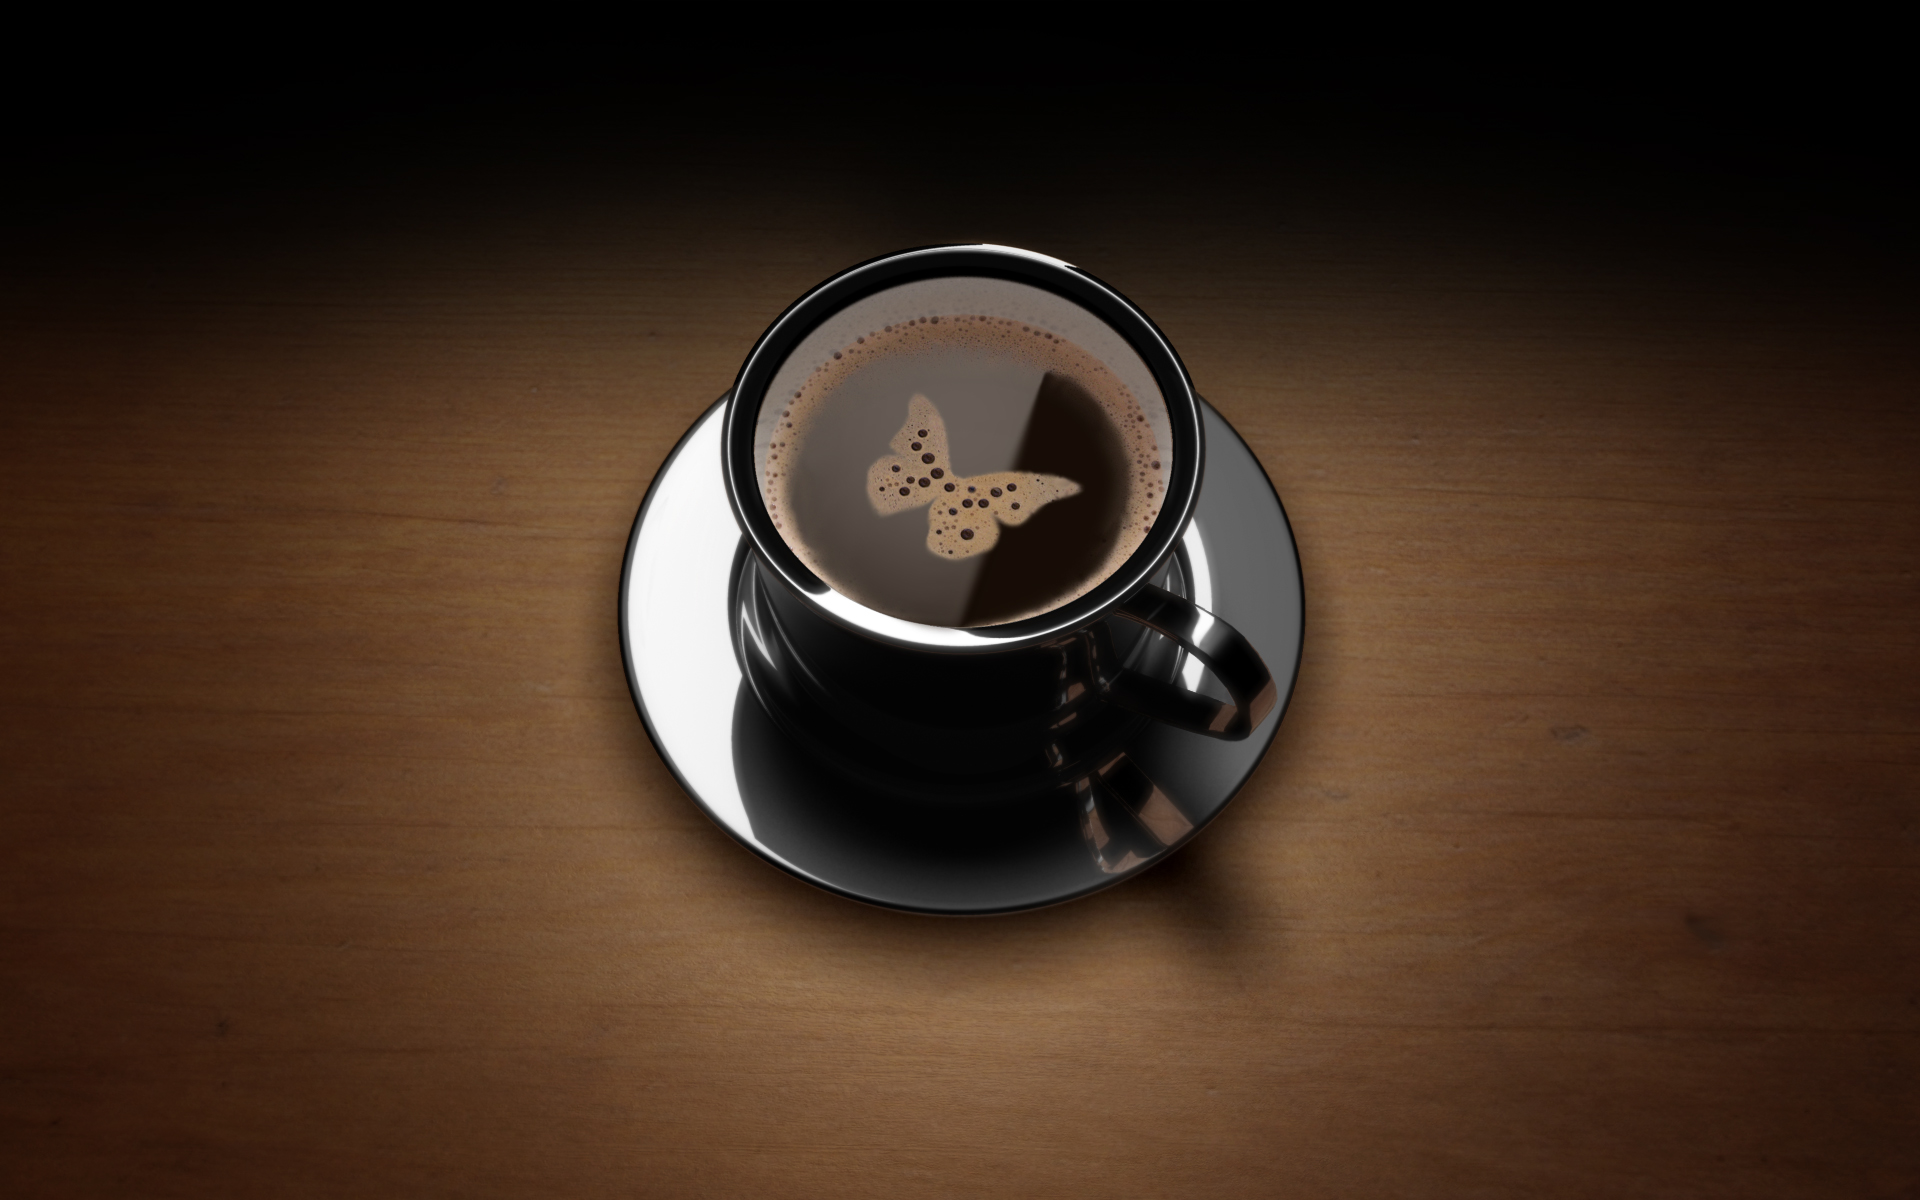 Alimento - Coffee  Jave Cafe Coffee Jave Cafe Mariposa Brown Java Fondo de Pantalla